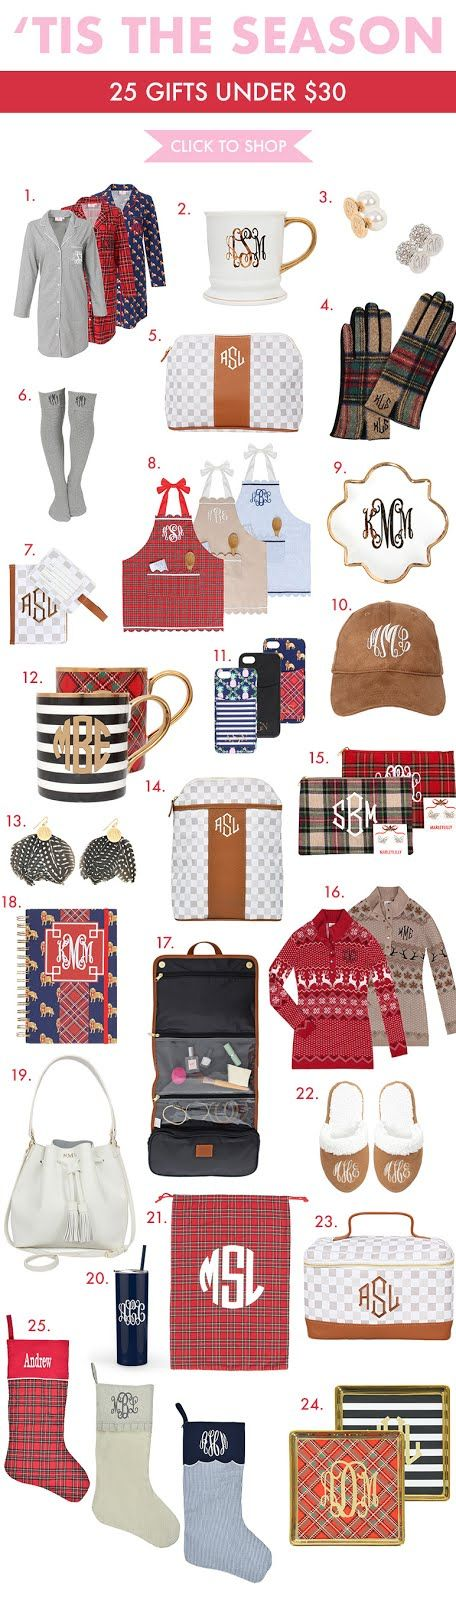 25 Personalized Gifts Under $30 | The Monogrammed Life | Bloglovin'